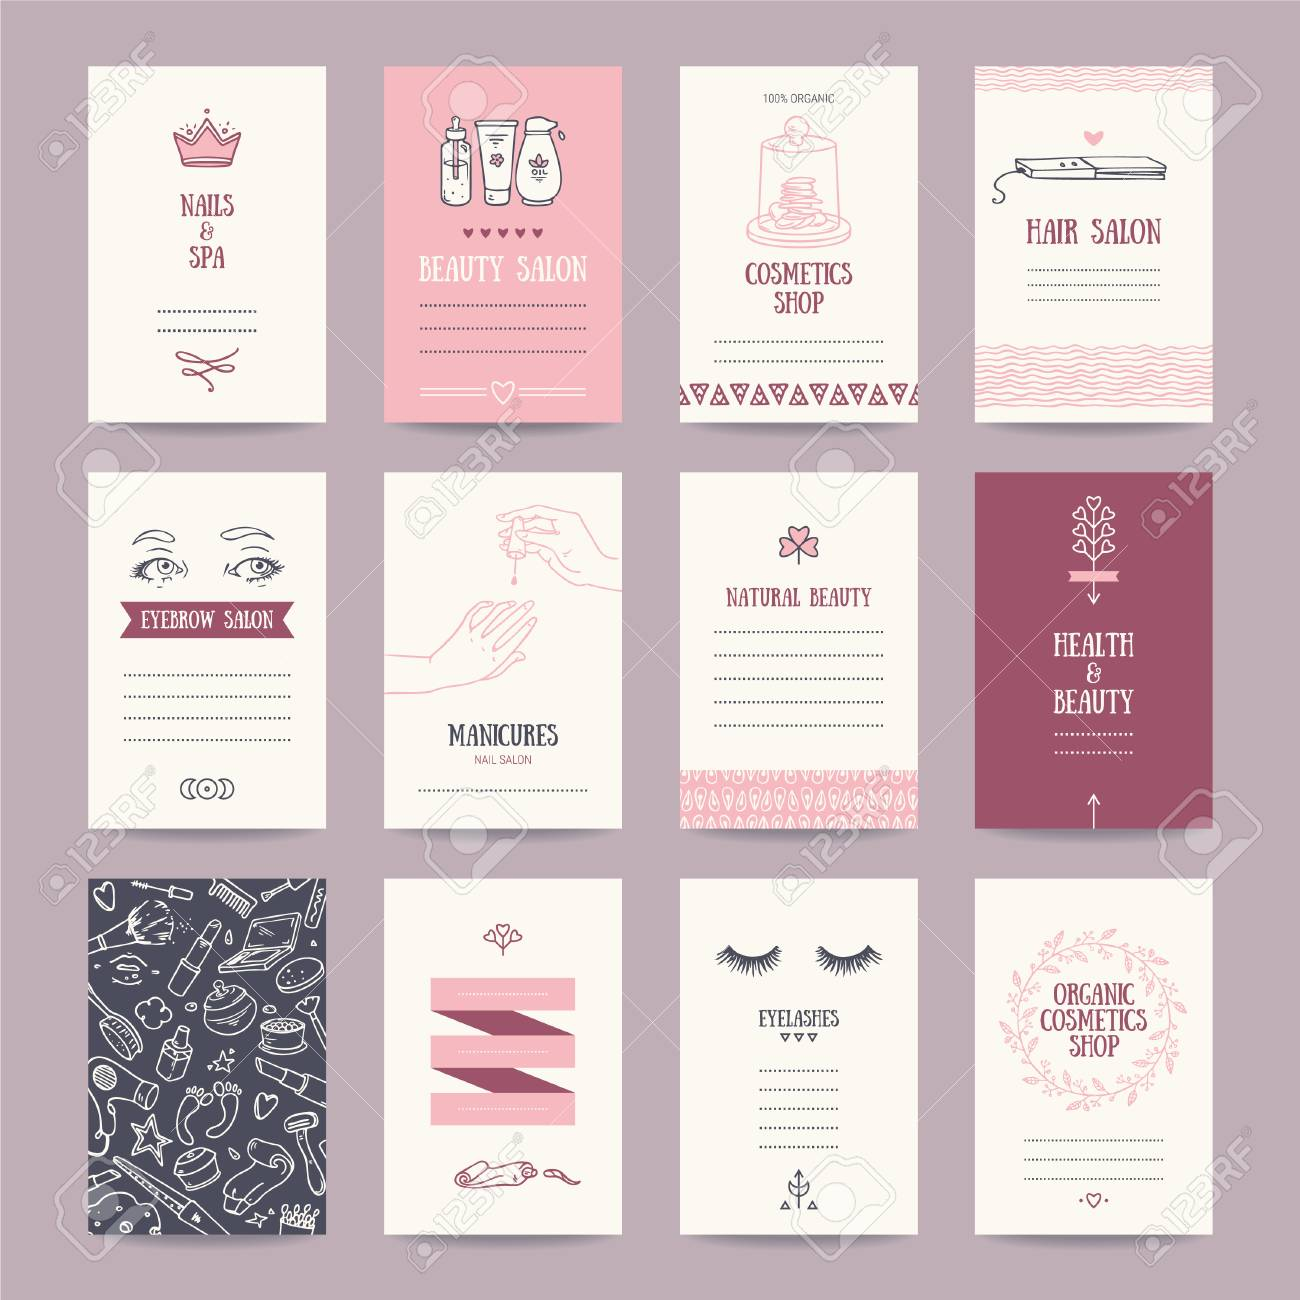 Cosmetics Shop Business Cards, Beauty Salon Invitations, Spa ...